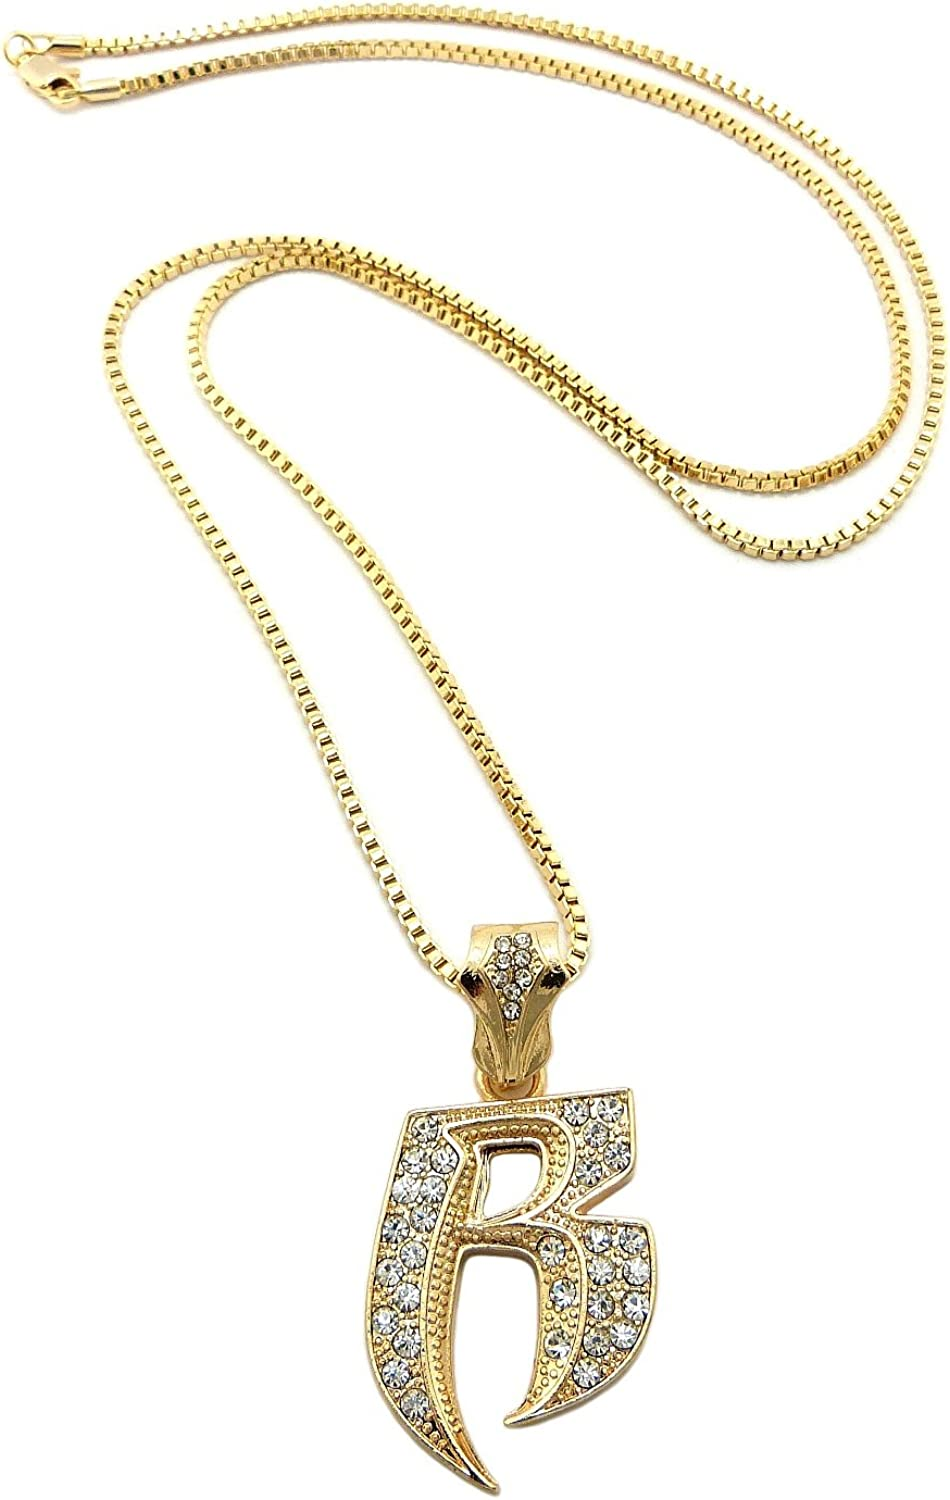 LaRaso /& Co Sterling Silver Initial B Pendant Necklace Jewelry for Women